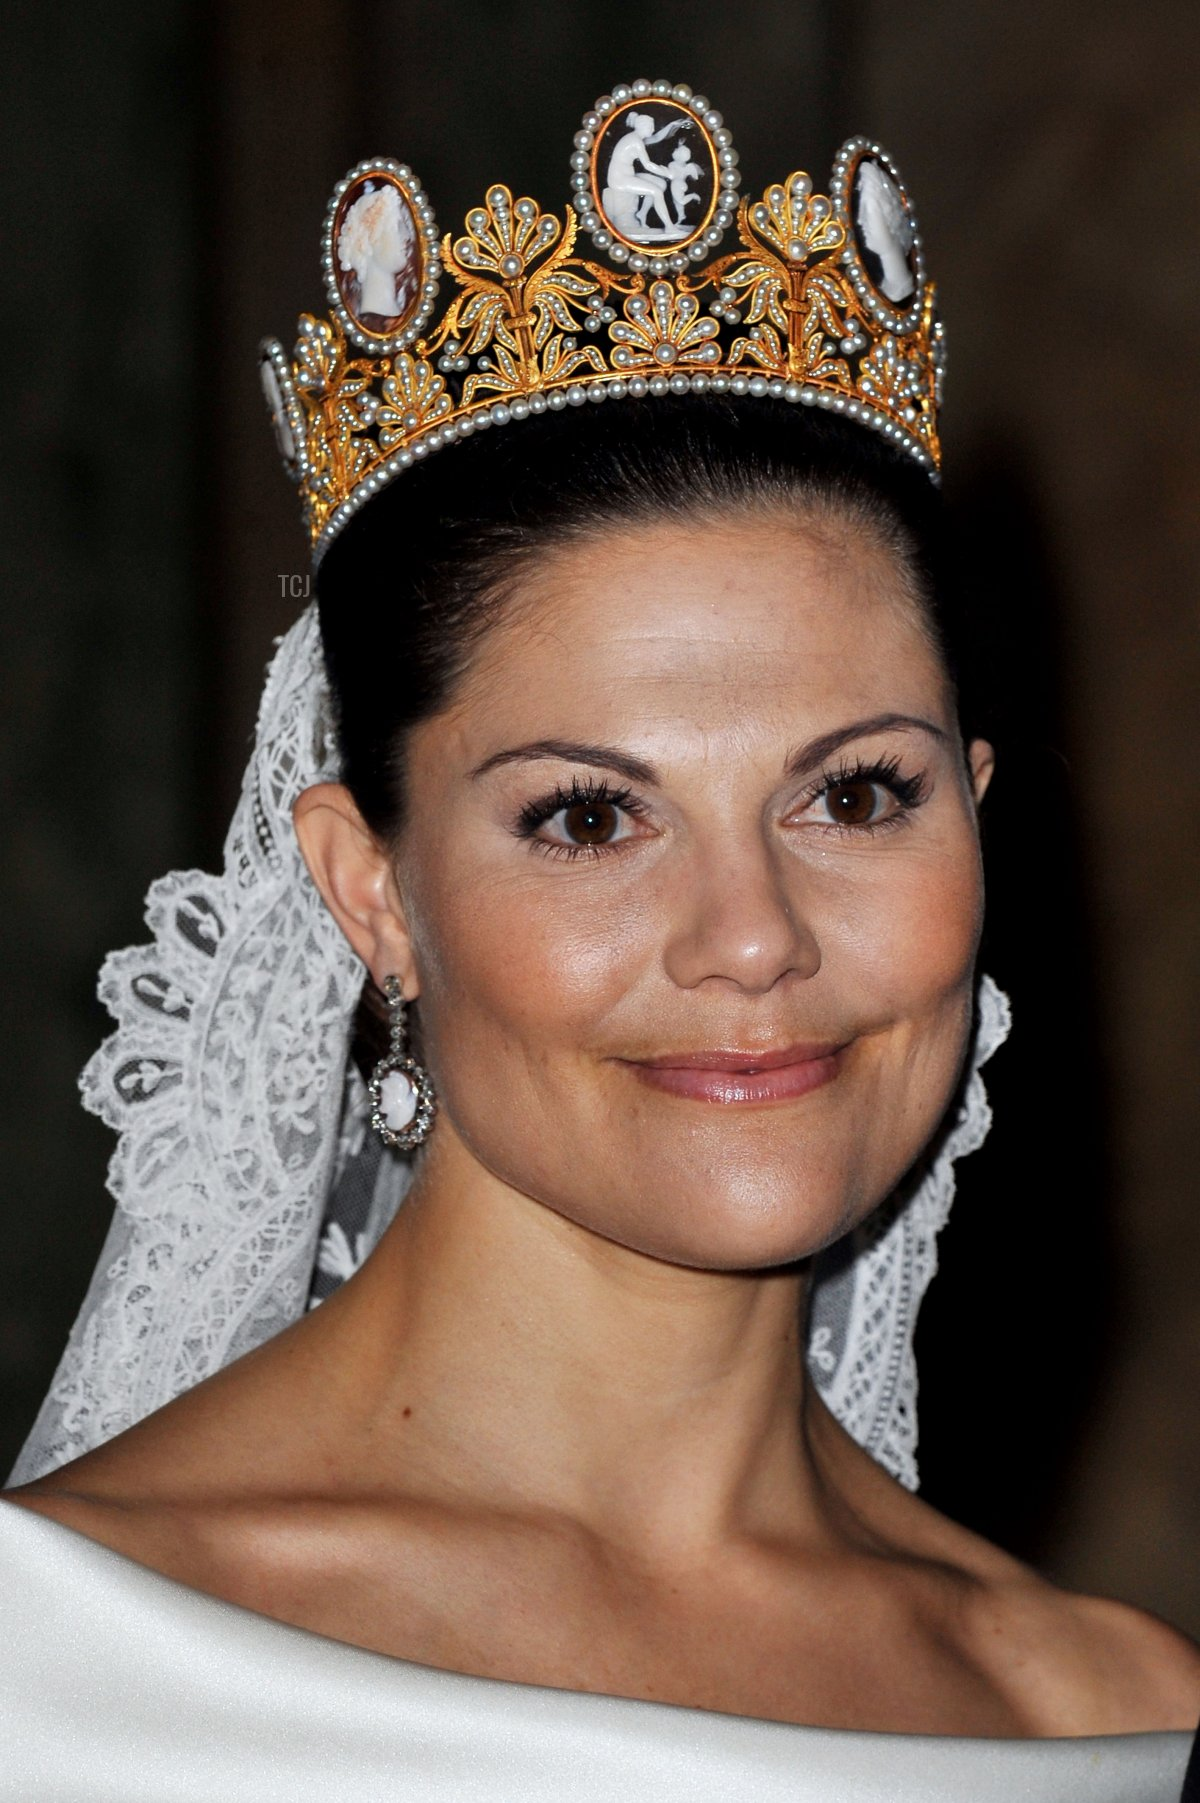 Crown Princess Victoria of Sweden attends her wedding banquet at the Royal Palace on June 19, 2010 in Stockholm, Sweden